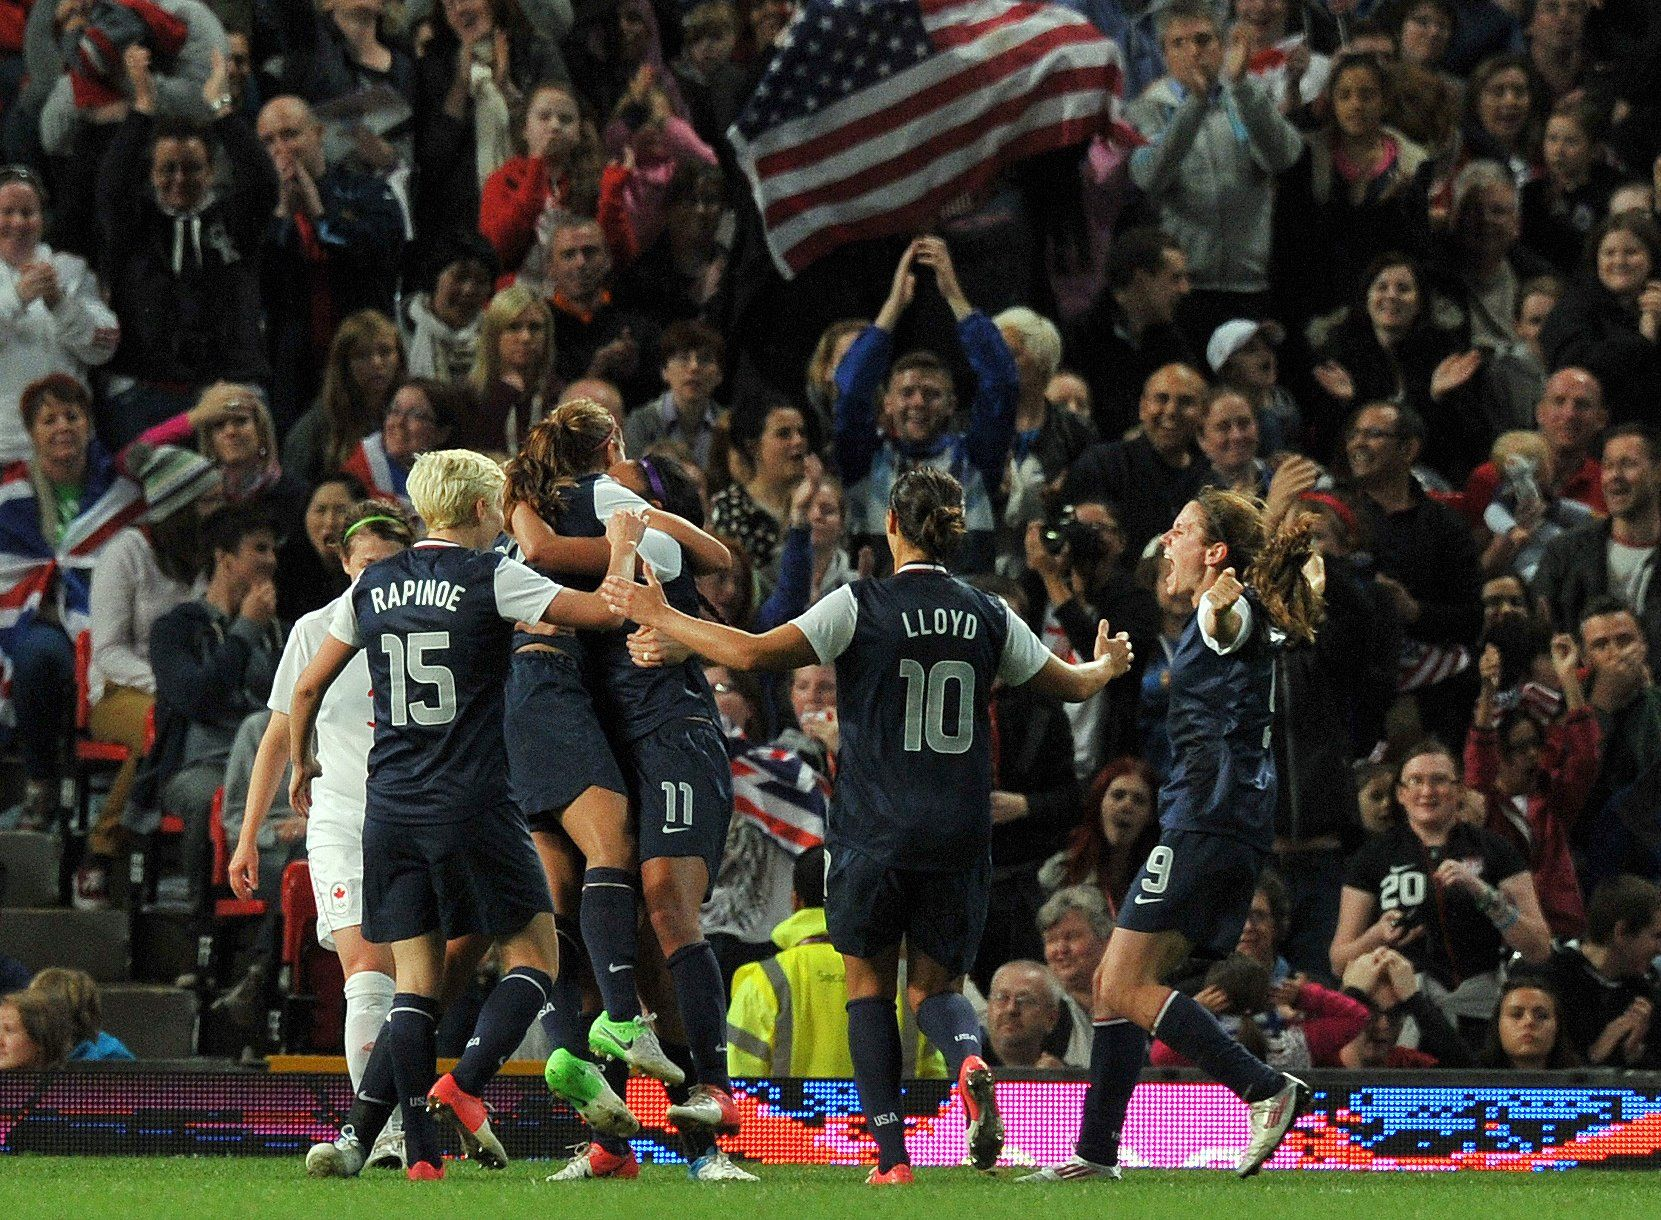 Alex Morgan scored the winning goal in the 123rd minute of play during the semifinal match against Canada.